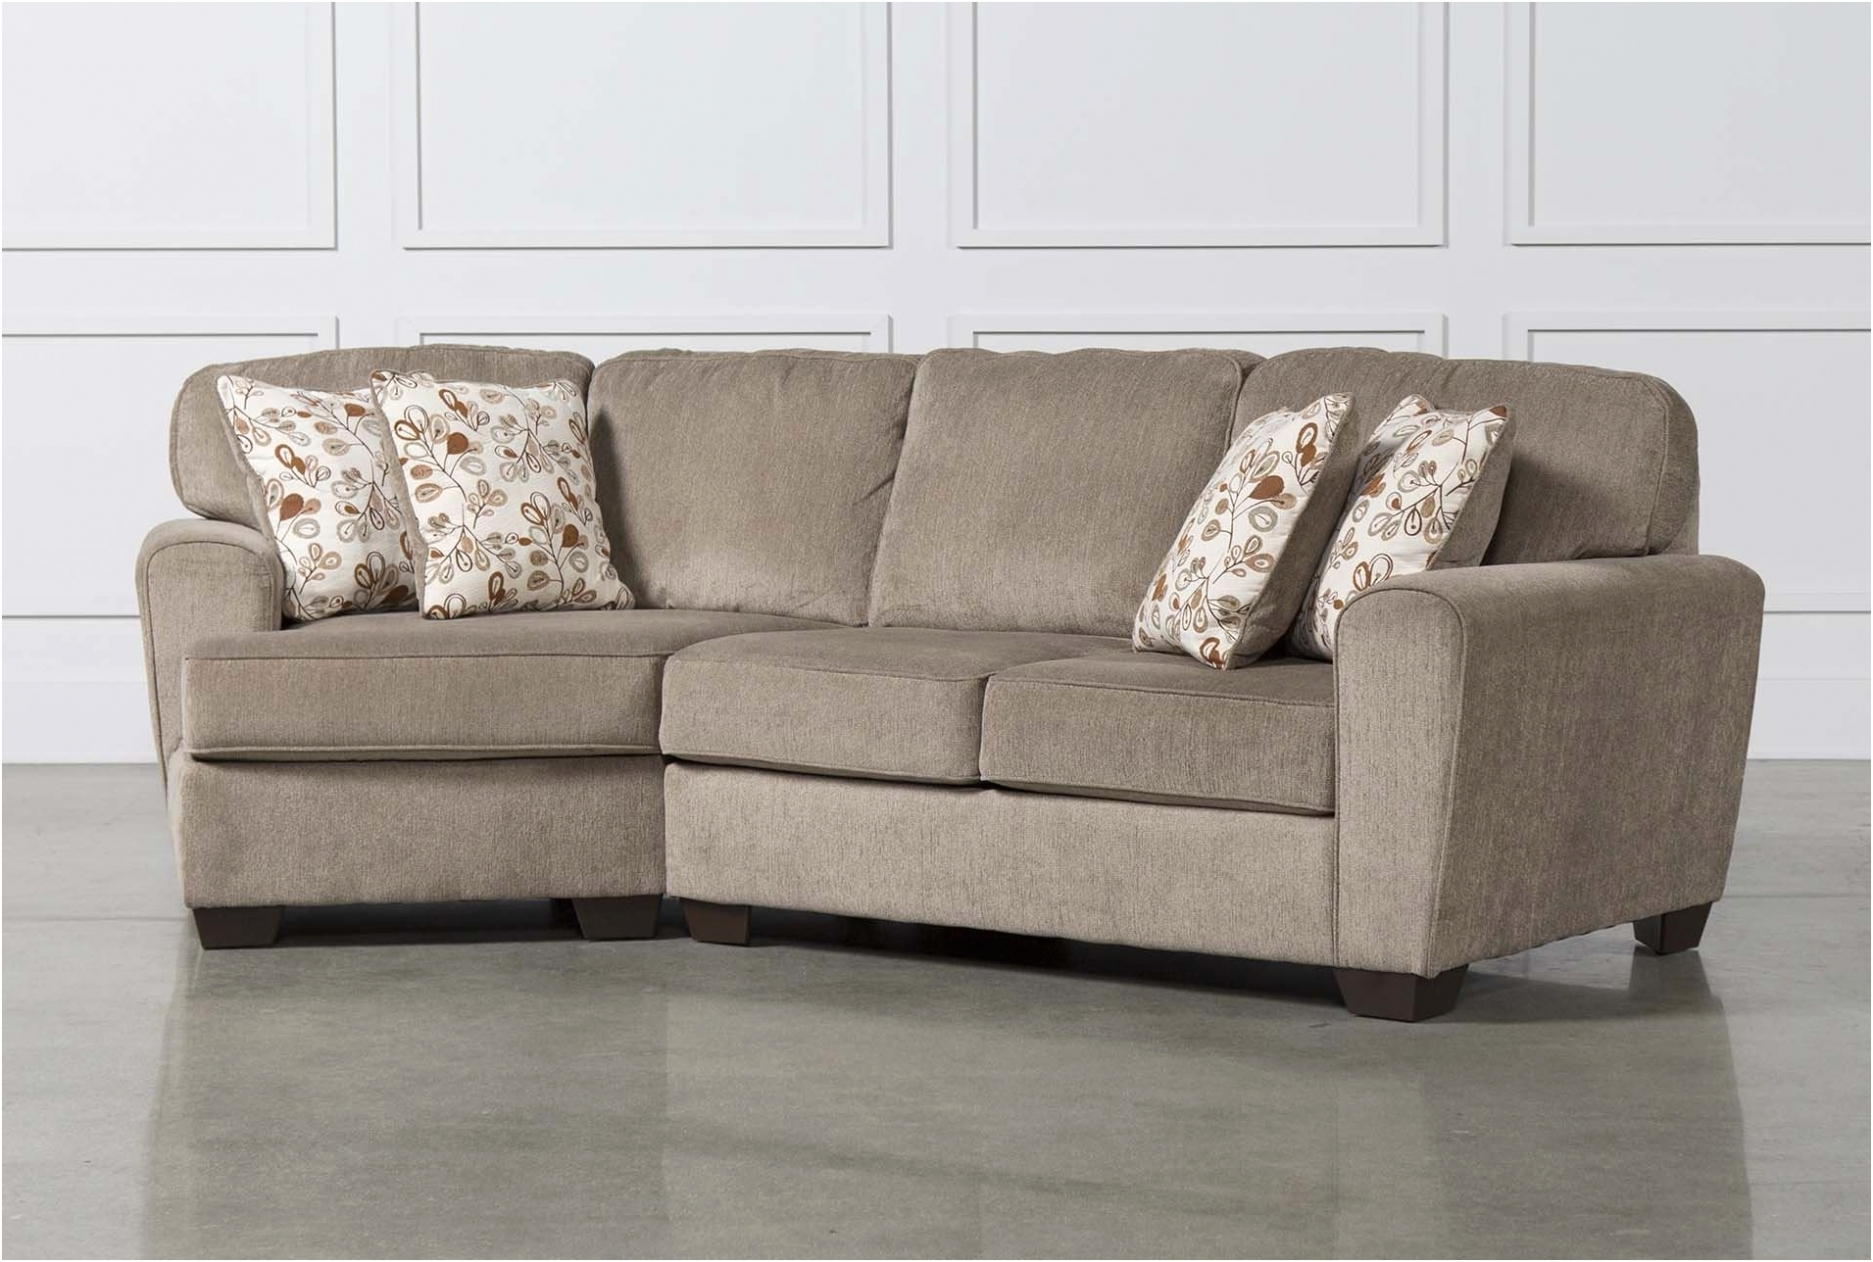 Living Spaces Sectional Sofa Bed – Sofa Design Ideas Throughout Aquarius Light Grey 2 Piece Sectionals With Laf Chaise (View 23 of 30)